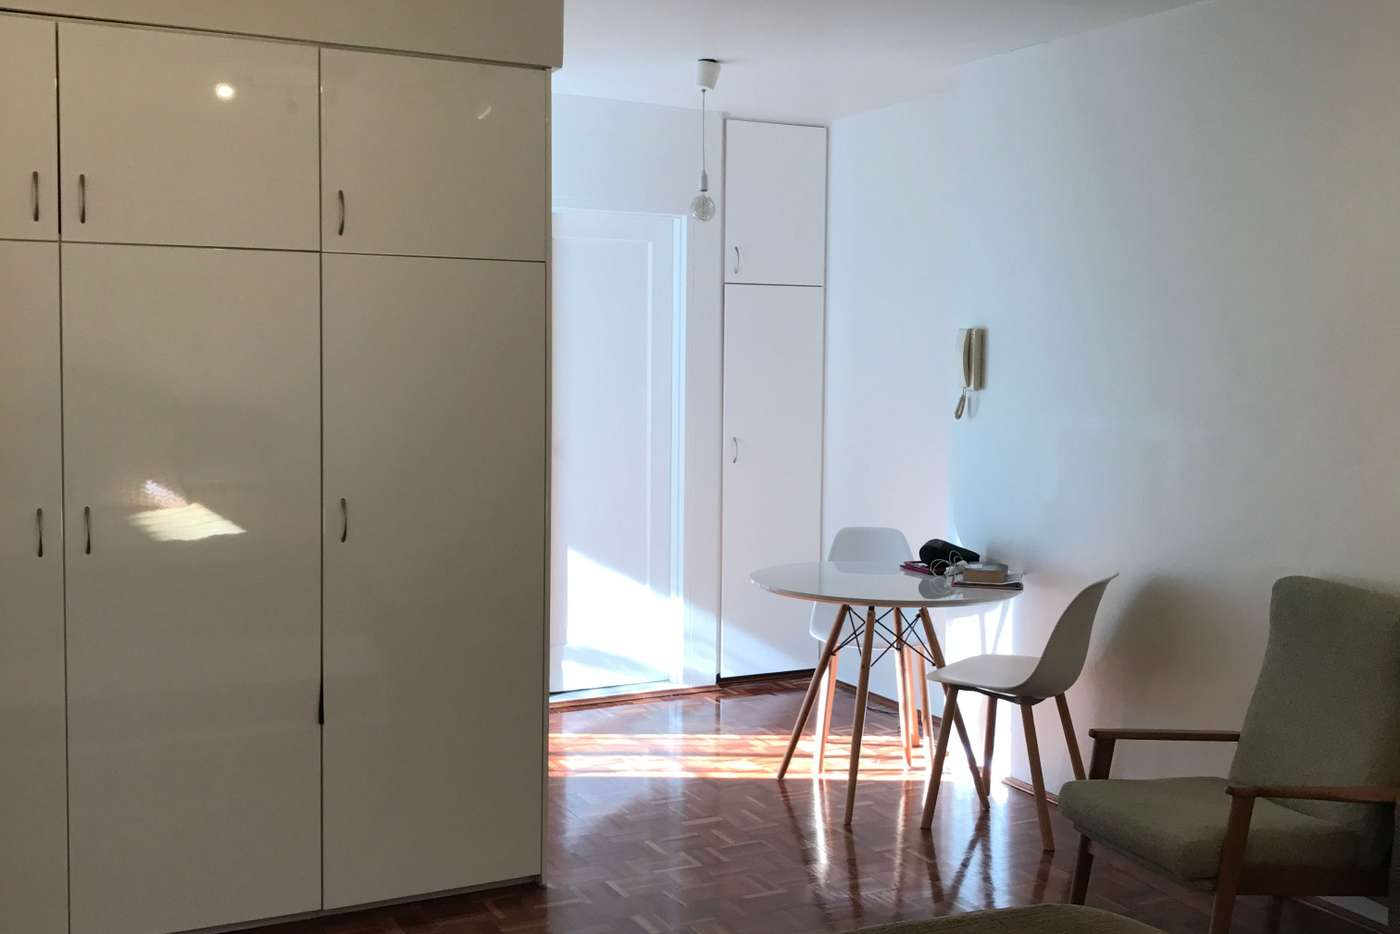 Main view of Homely studio listing, 14/1 Thurlow Street, Redfern NSW 2016